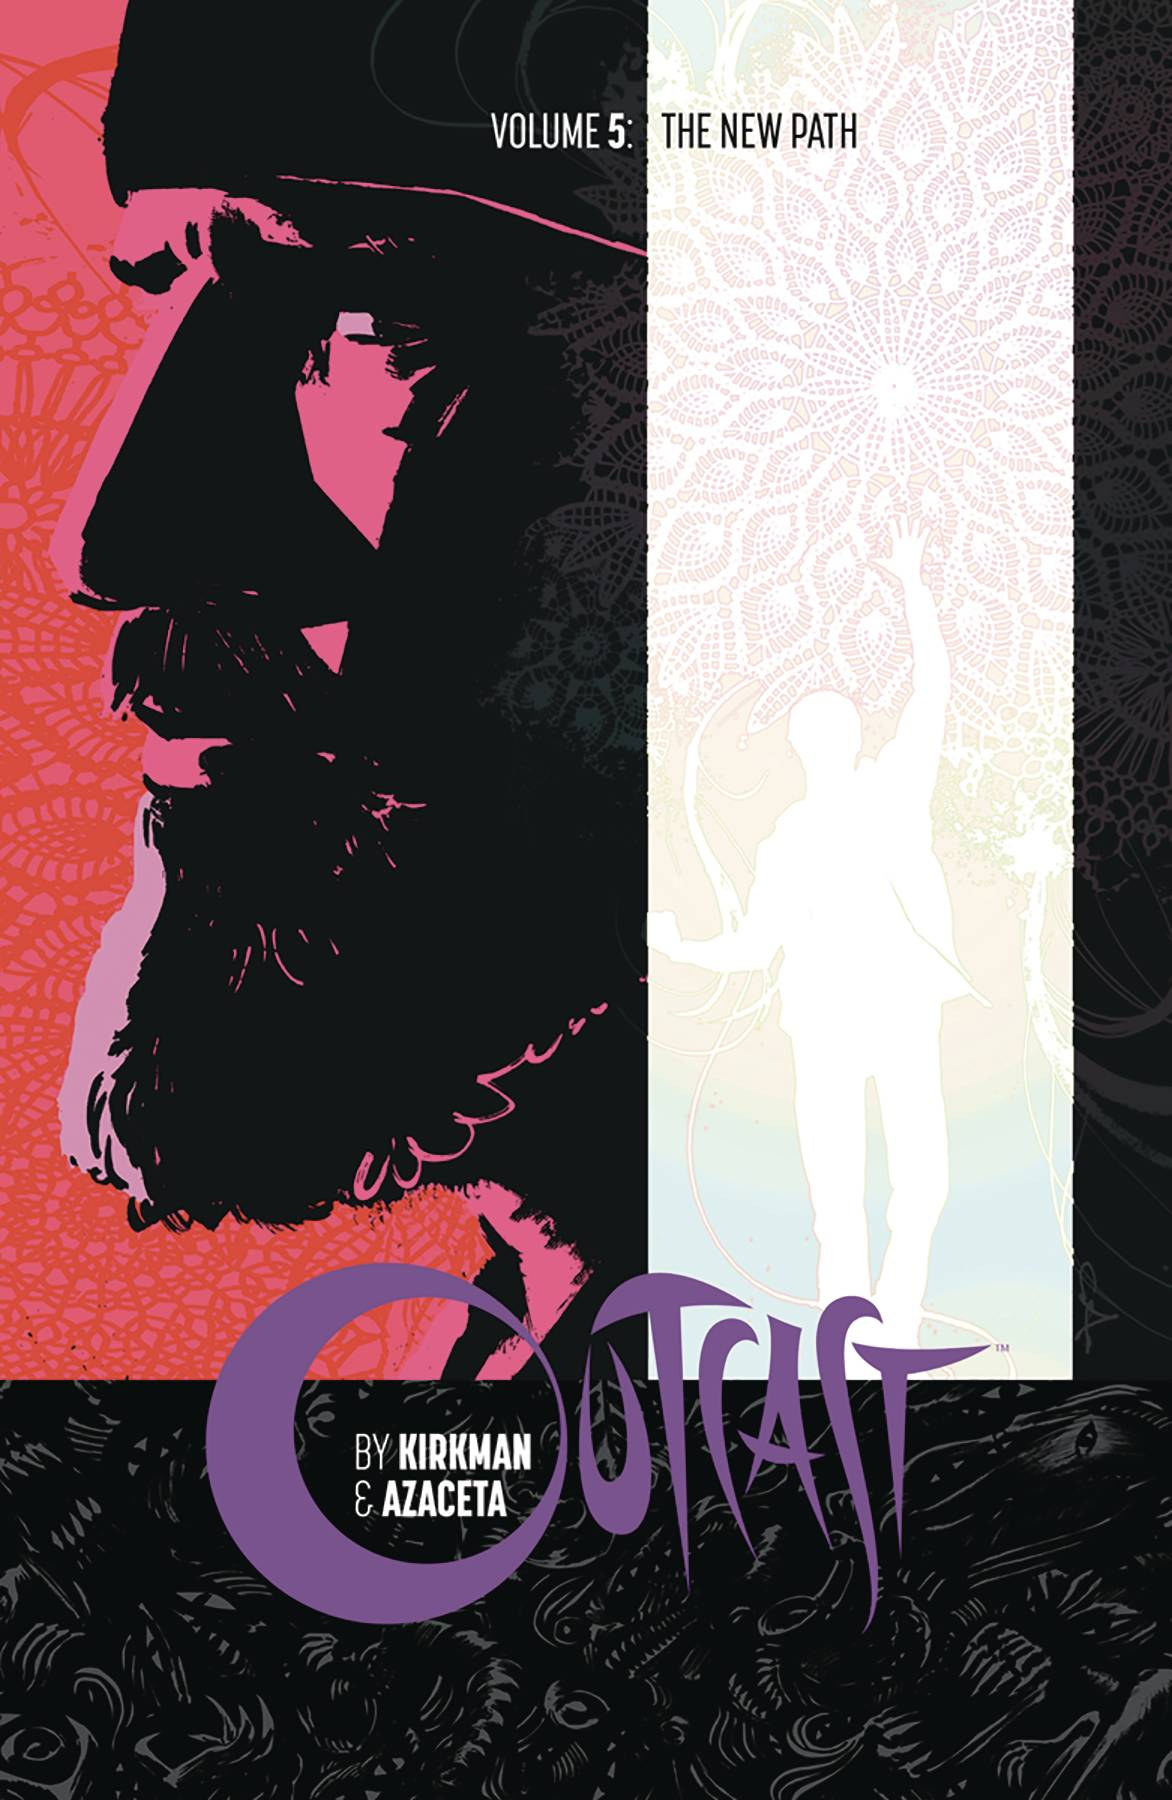 Outcast vol 5: The New Path s/c by Robert Kirkman & Paul Azaceta